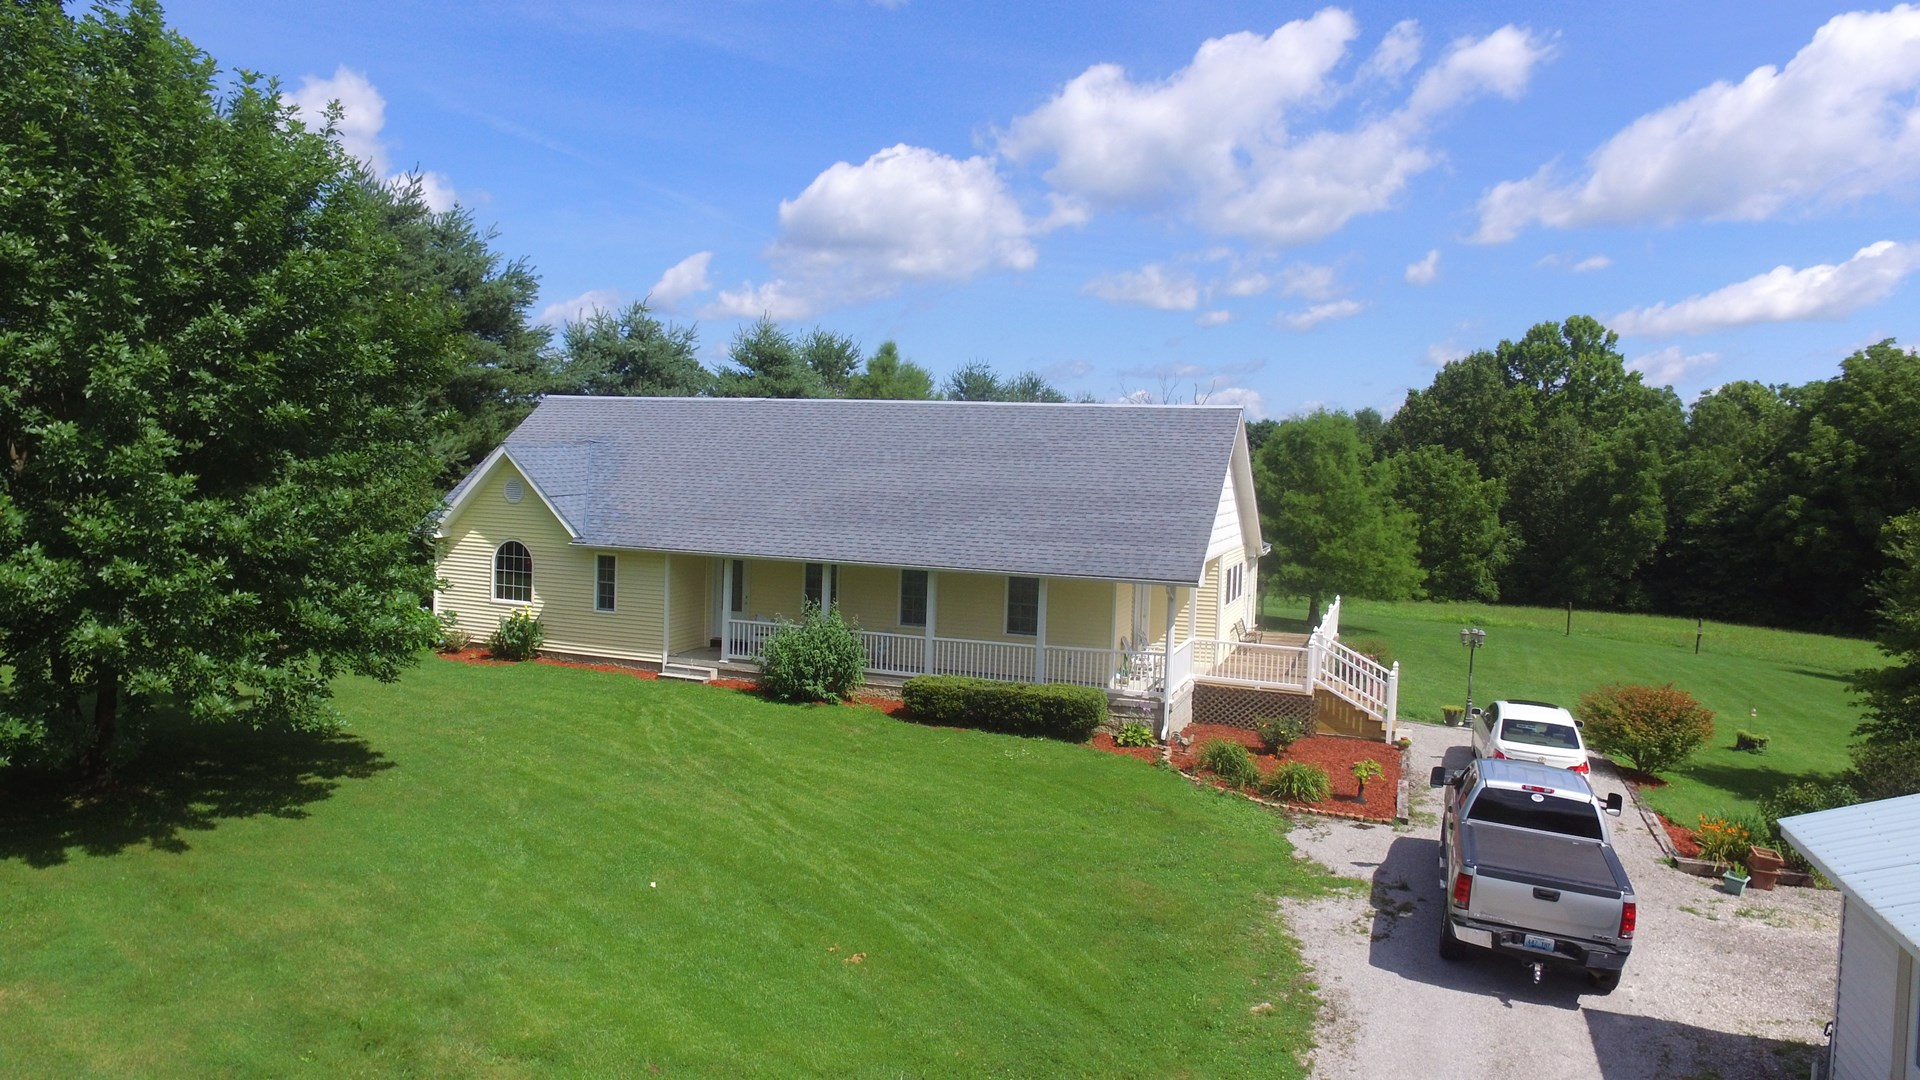 3 BED 2.5 BATH HOME ON 3 ACRES IN SOUTH-CENTRAL KENTUCKY